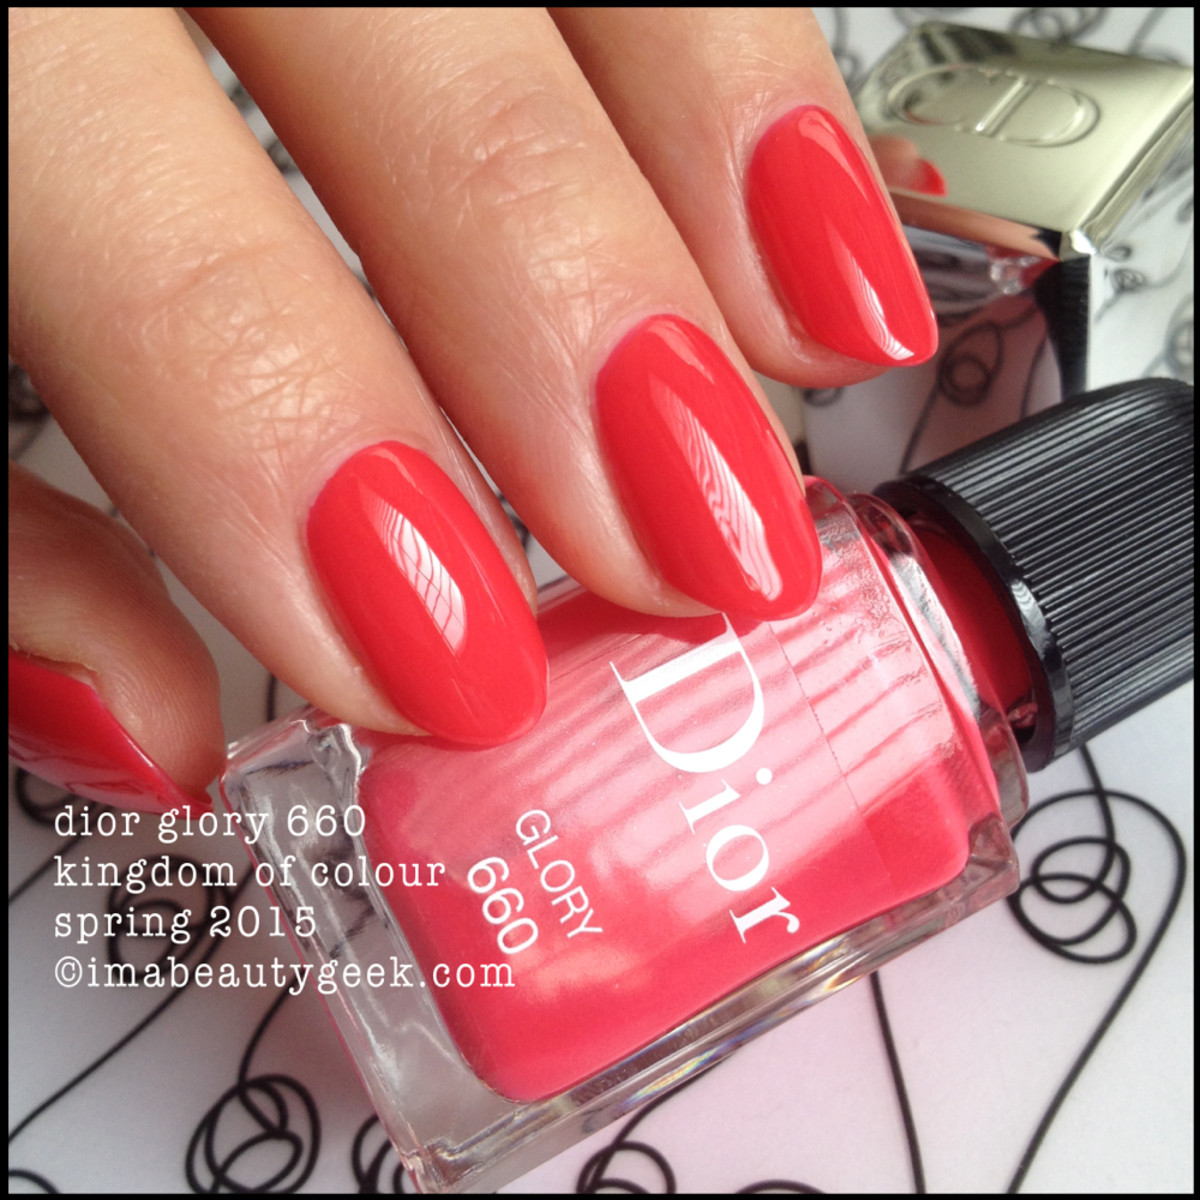 Dior Glory 660 Kingdom of Colour Spring 2015